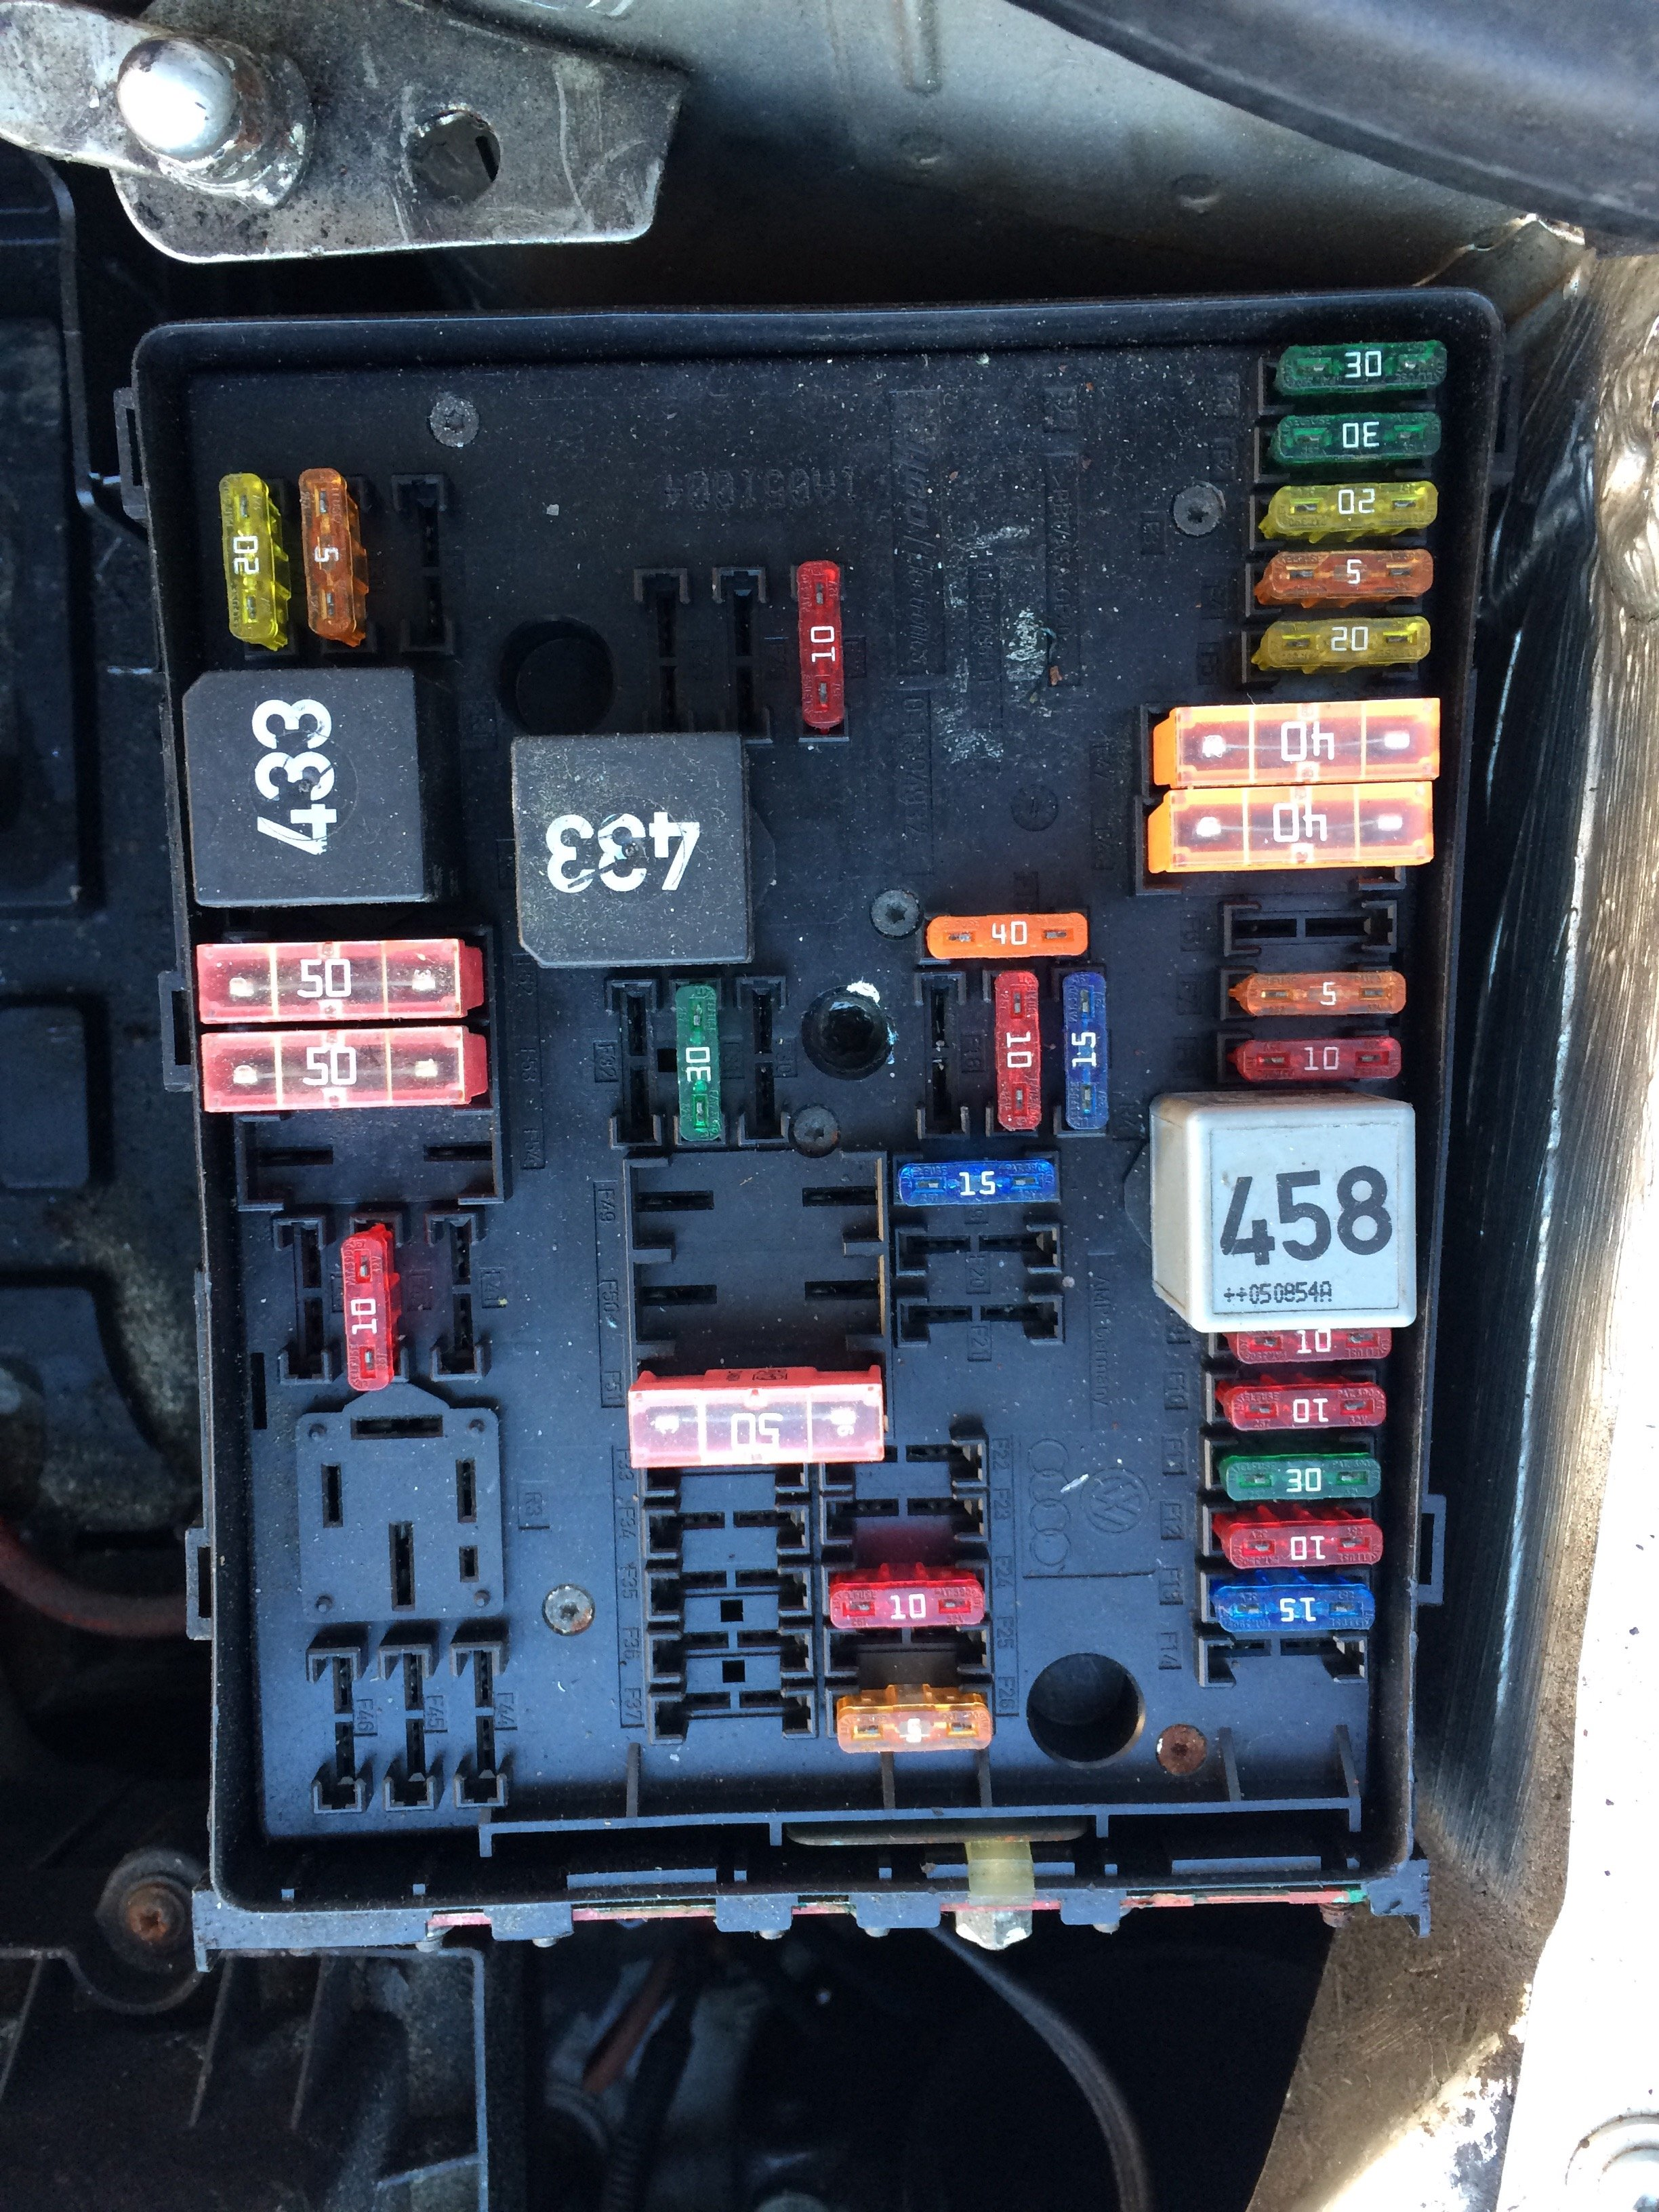 B F E Ec additionally Img together with Das Island besides Lexus Es Fuse Box Engine  partment as well Ac Bf C Acaf Ff C. on f fuse panel